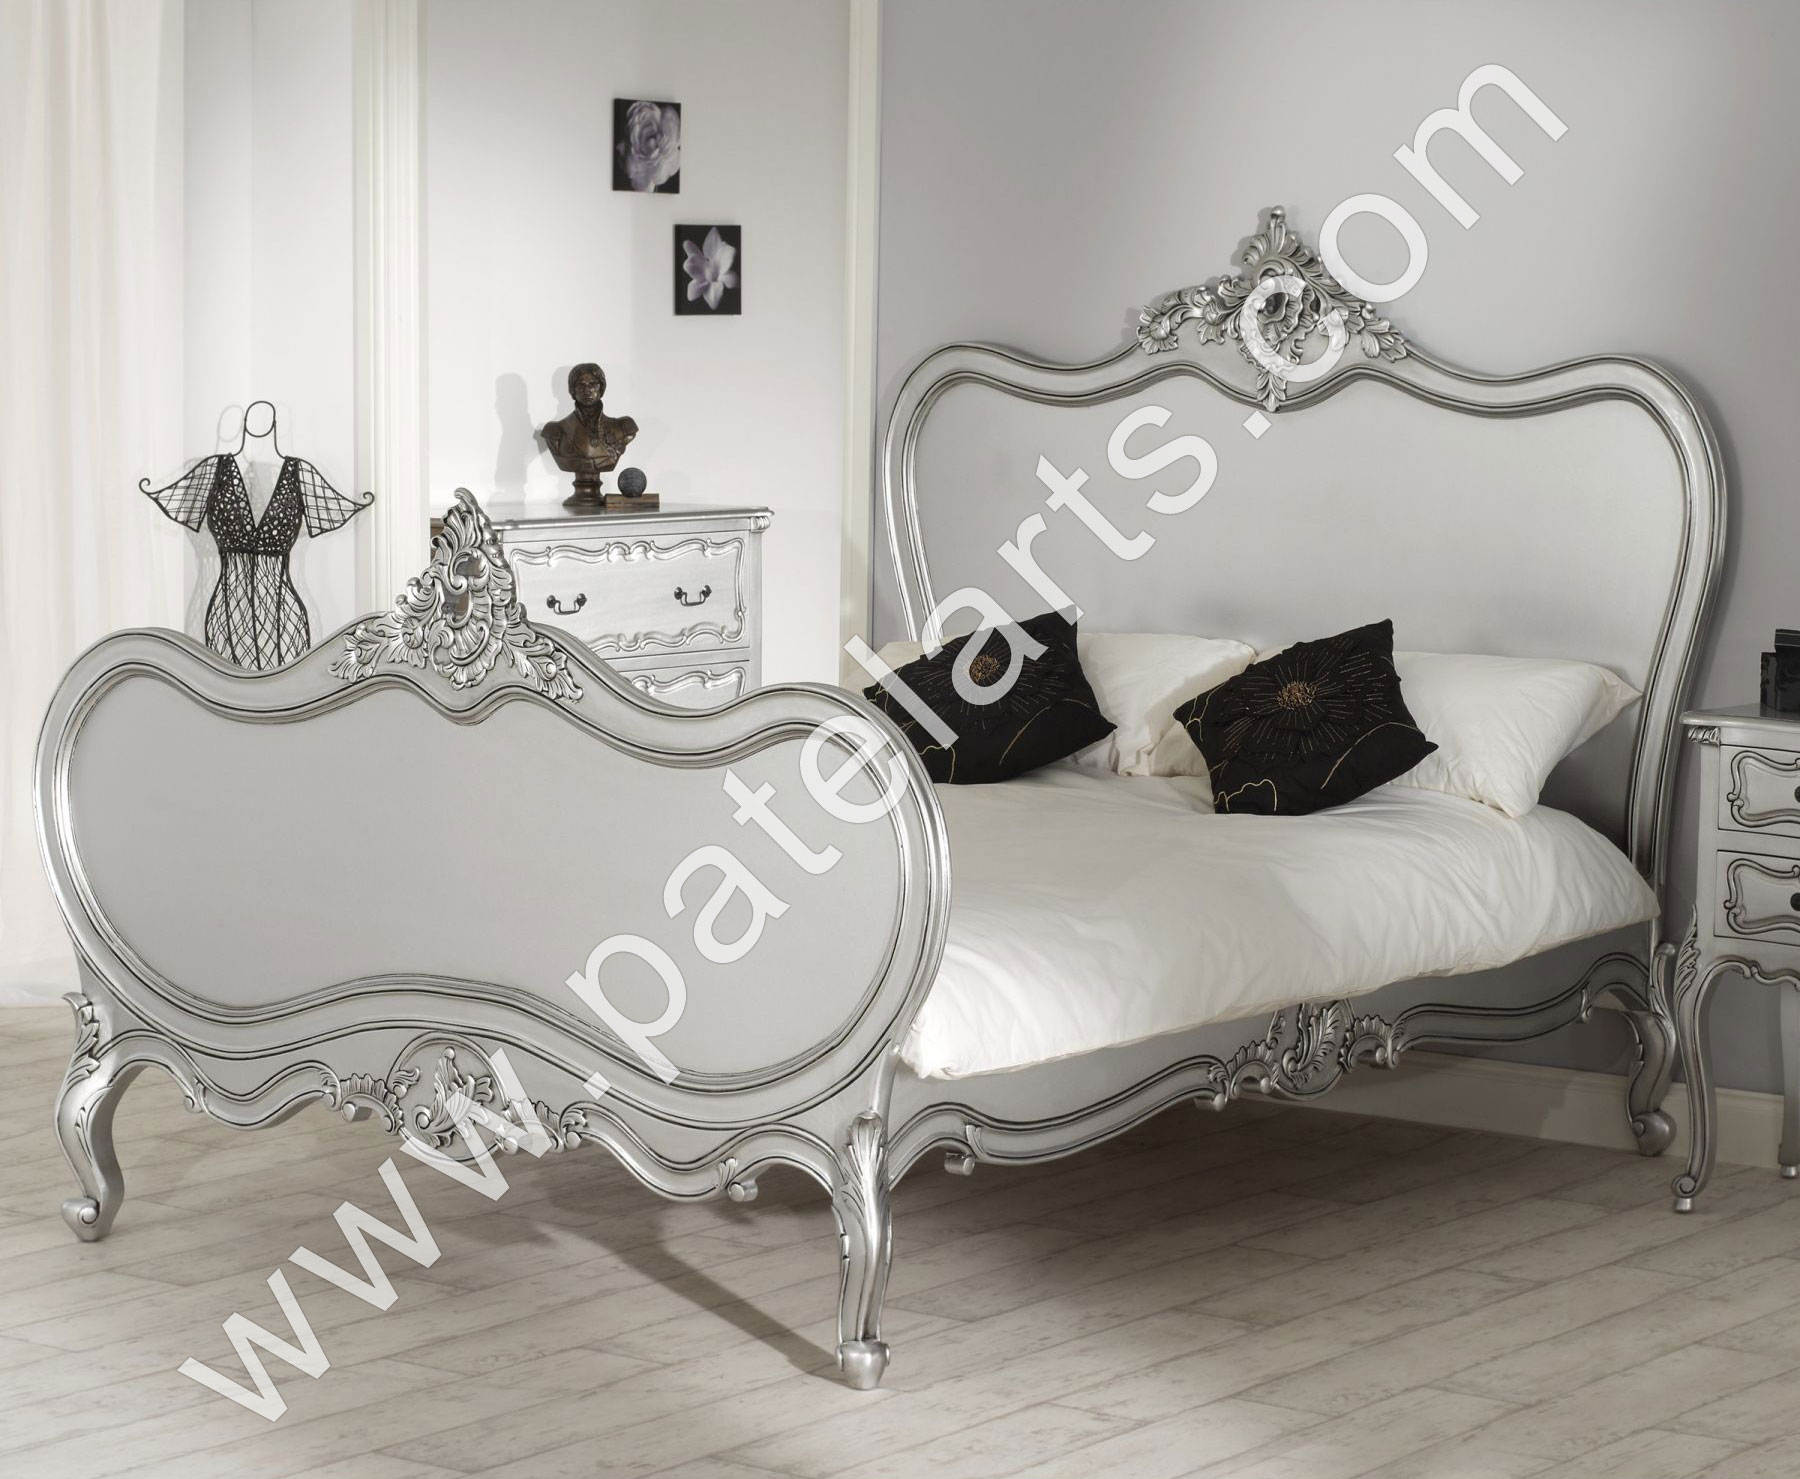 Silver Beds,indian Silver Bed,Decorative Silver Bed,Manufacturers,India,Contemporary Silver Bed,Handcrafted Silver Bed,Silver Bed,Beds,Exporters,india,Silver Bed Design,Silver Bed Head,Silver Queen Bed,Silver Bed Frames,Silver Bed reproductions,gold-Silver Bed,Royal Silver Bed,suppliers,india,Bedroom Furniture,udaipur,rajasthan,india